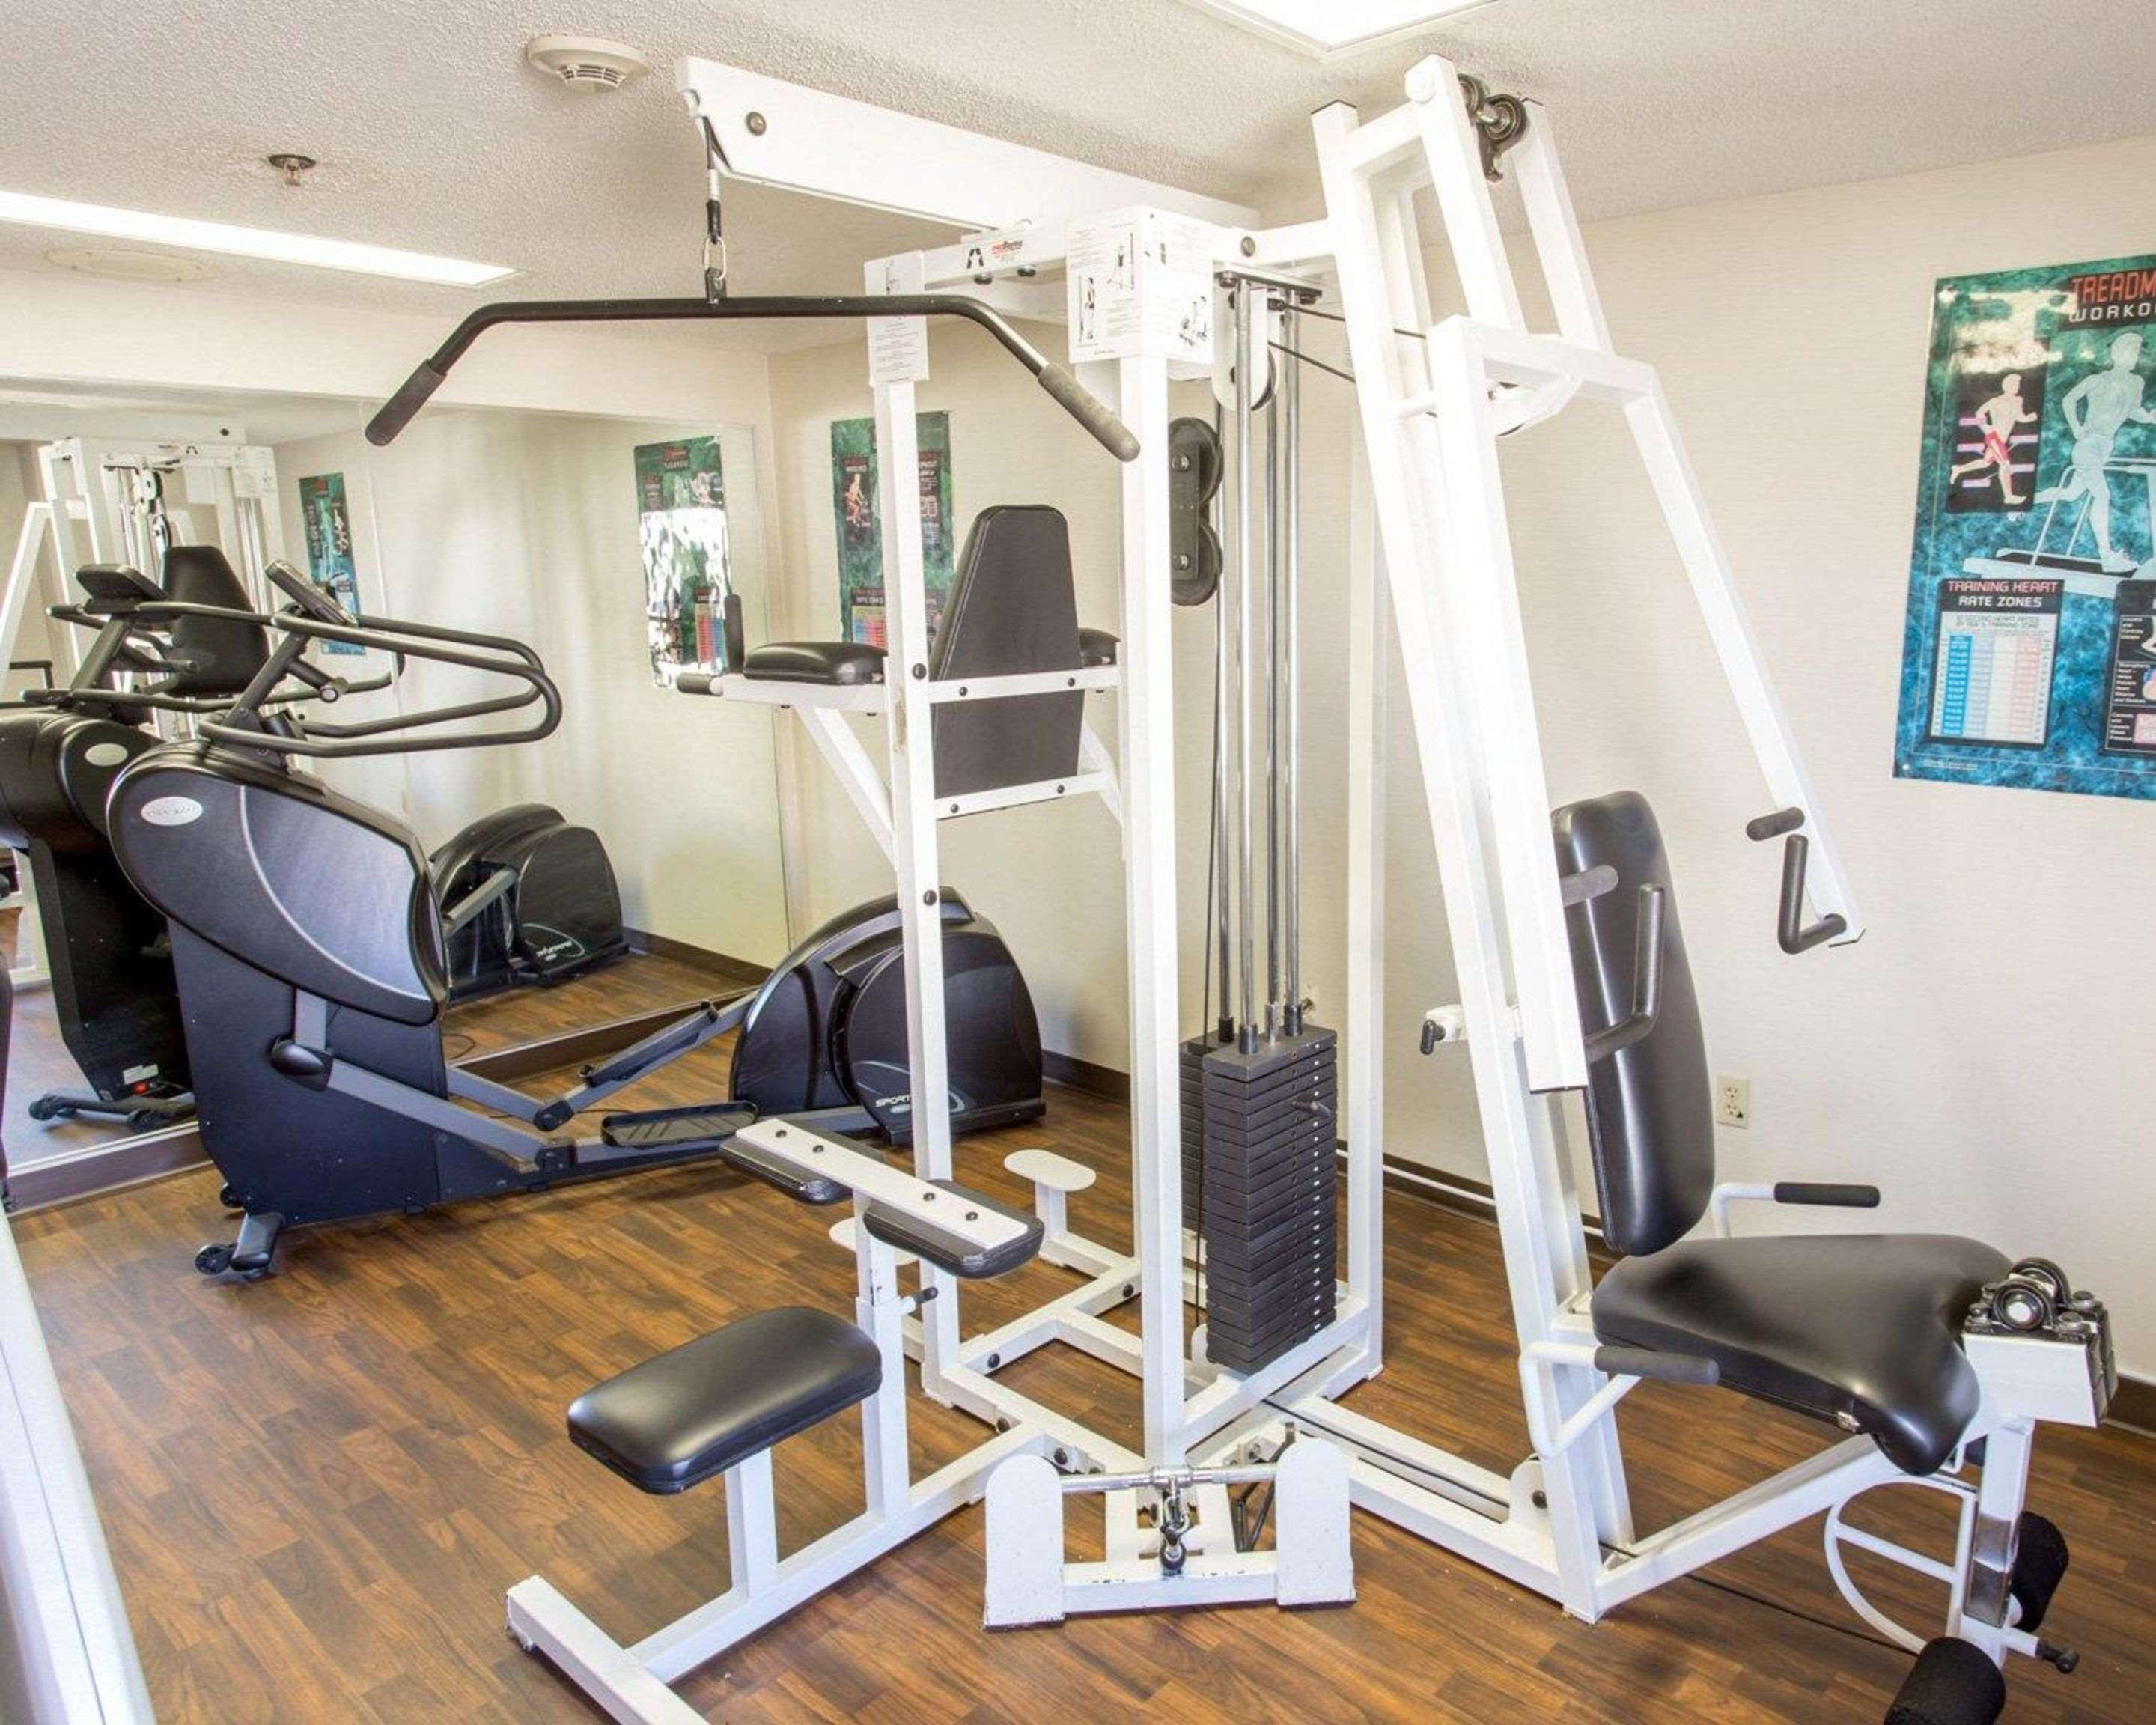 Fitness center with cardio equipment and weights